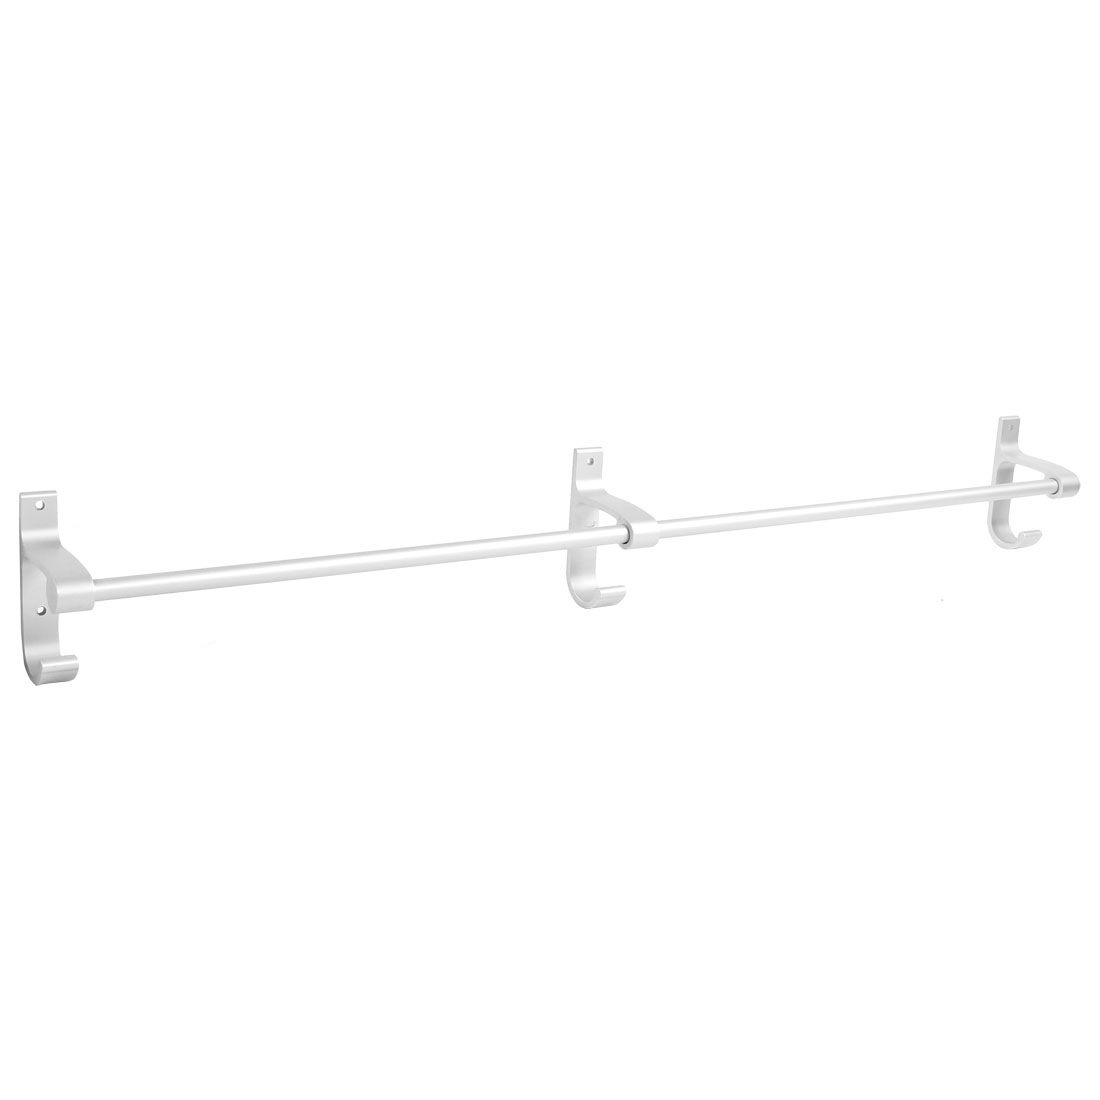 Hotel Home Bathroom Alumimum Wall Mount Single Bar Towel Rack Hanger 80cm Length